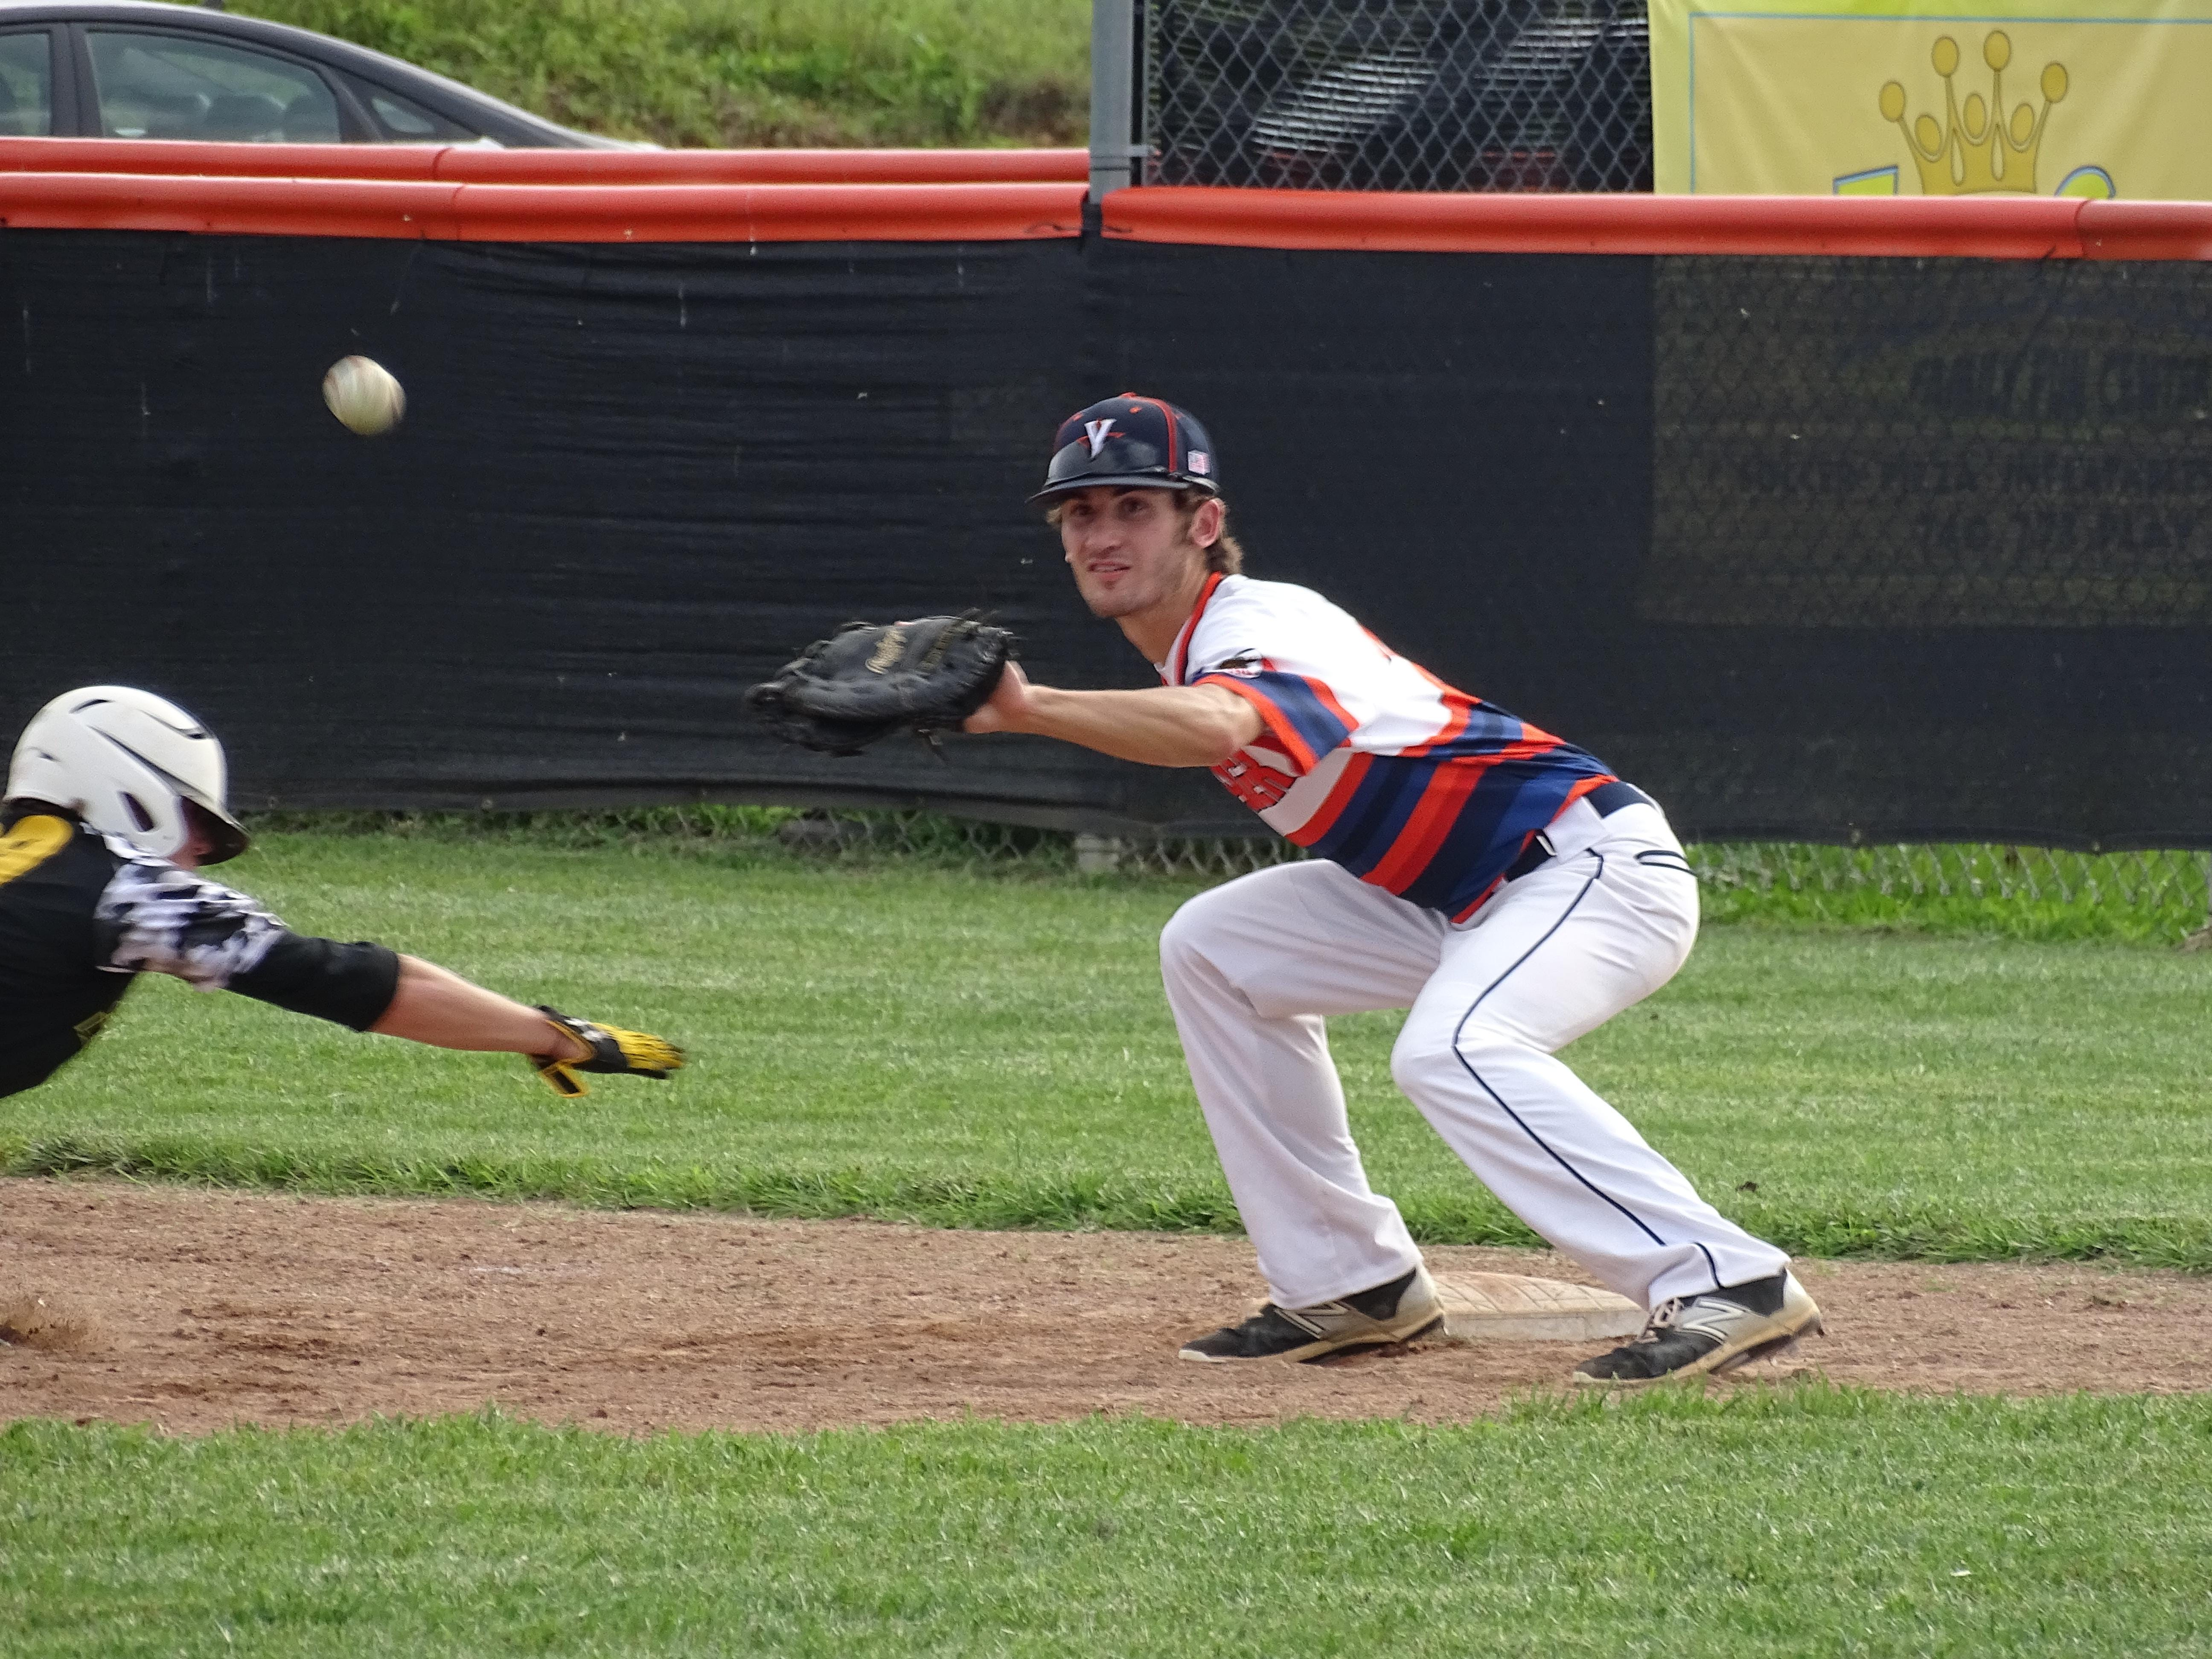 Cincinnati Yeager first baseman Matthew Kron fields a pickoff attempt of Waverly Post 142's Joe Henderson during Thursday night's contest at Waverly High School. Yeager beat Post 142, 15-1.